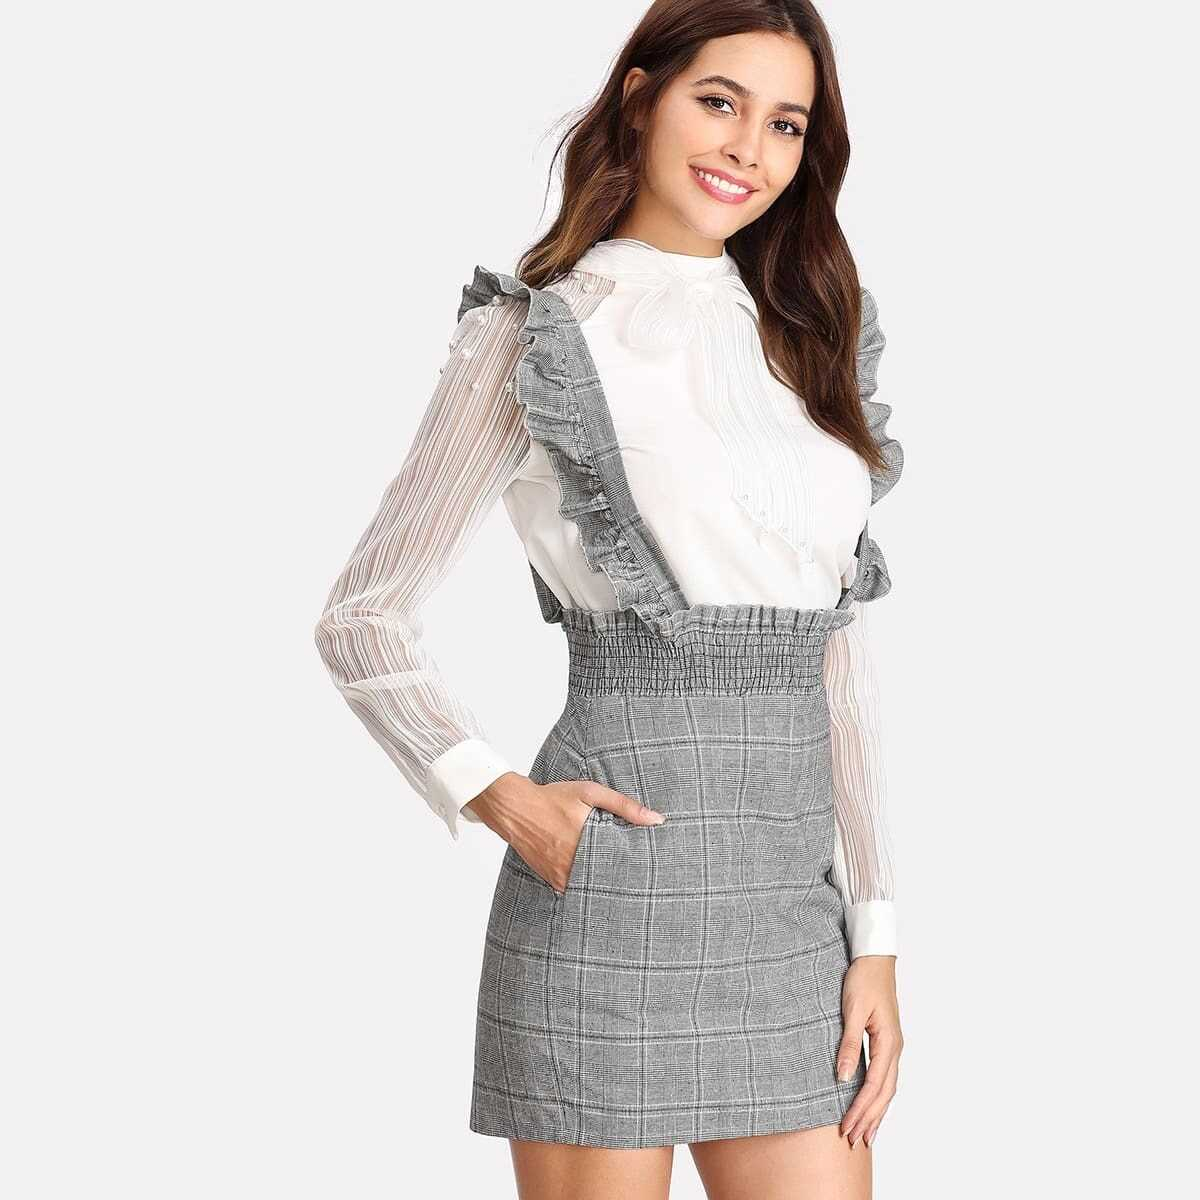 Shirred Waist Plaid Skirt With Flounce Strap in Grey by ROMWE on GOOFASH